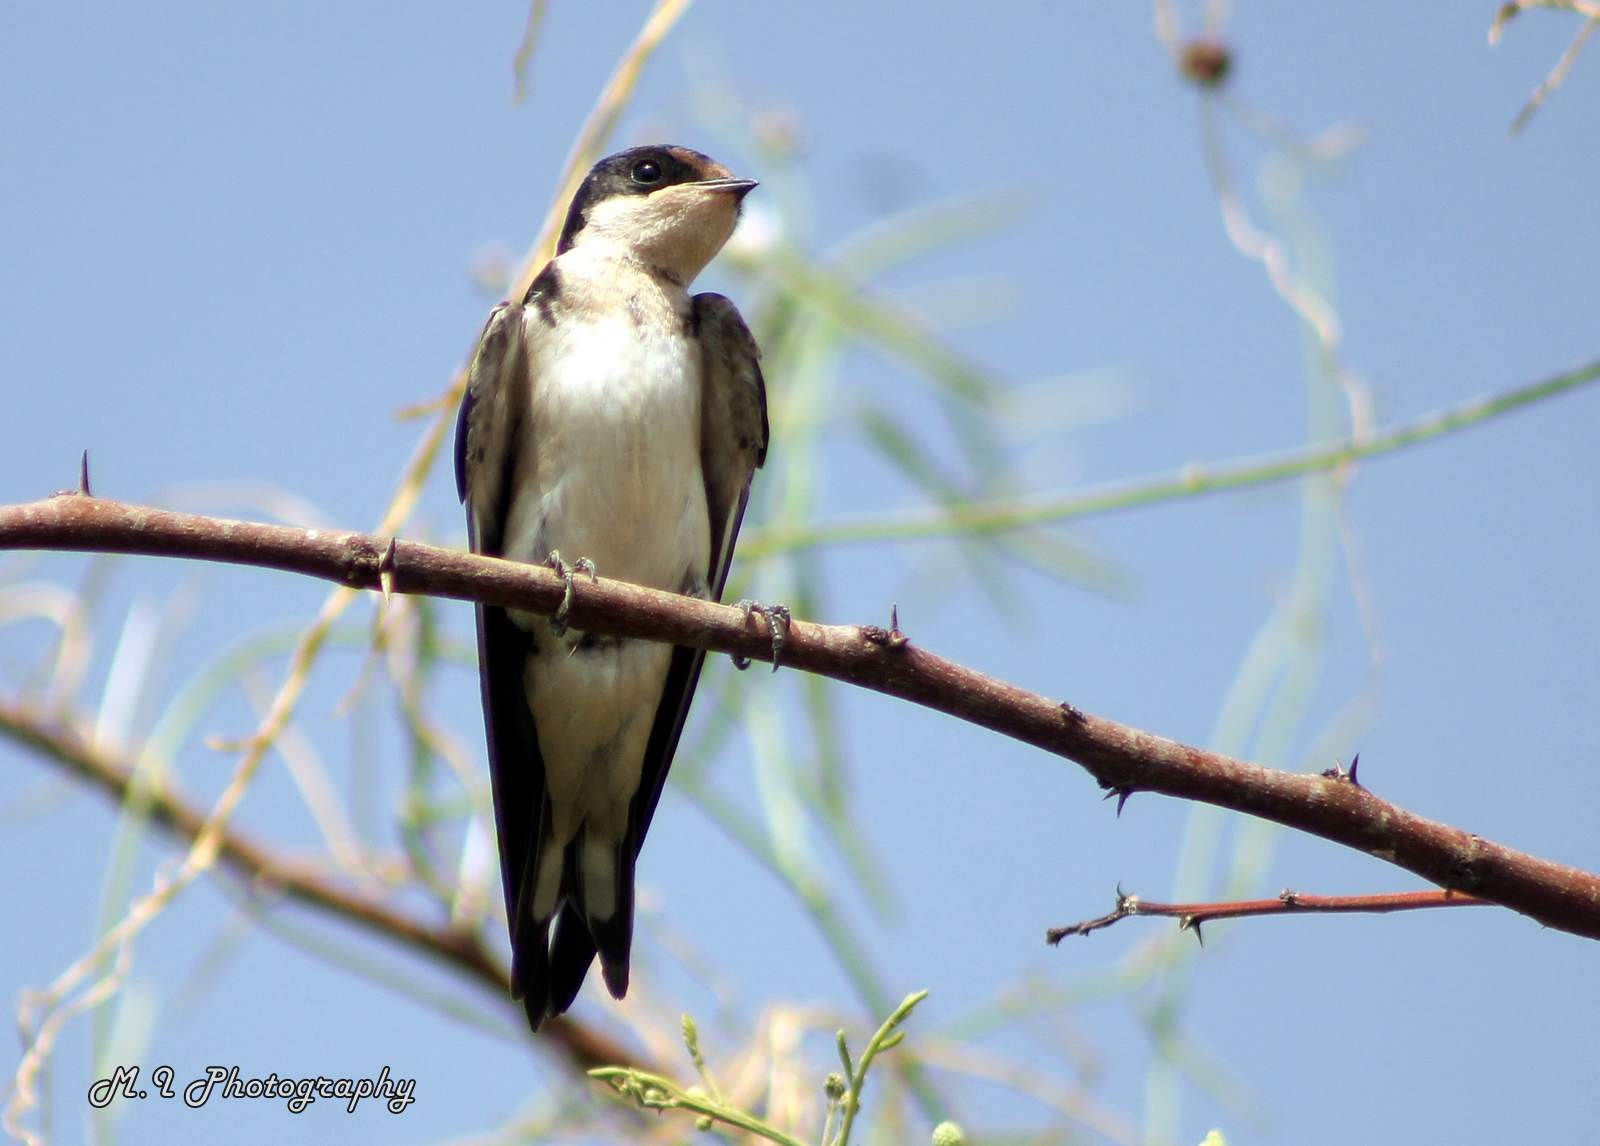 Photograph Ethiopian swallow 3/7/2013 @moon photo by Mohamed Ismael on 500px